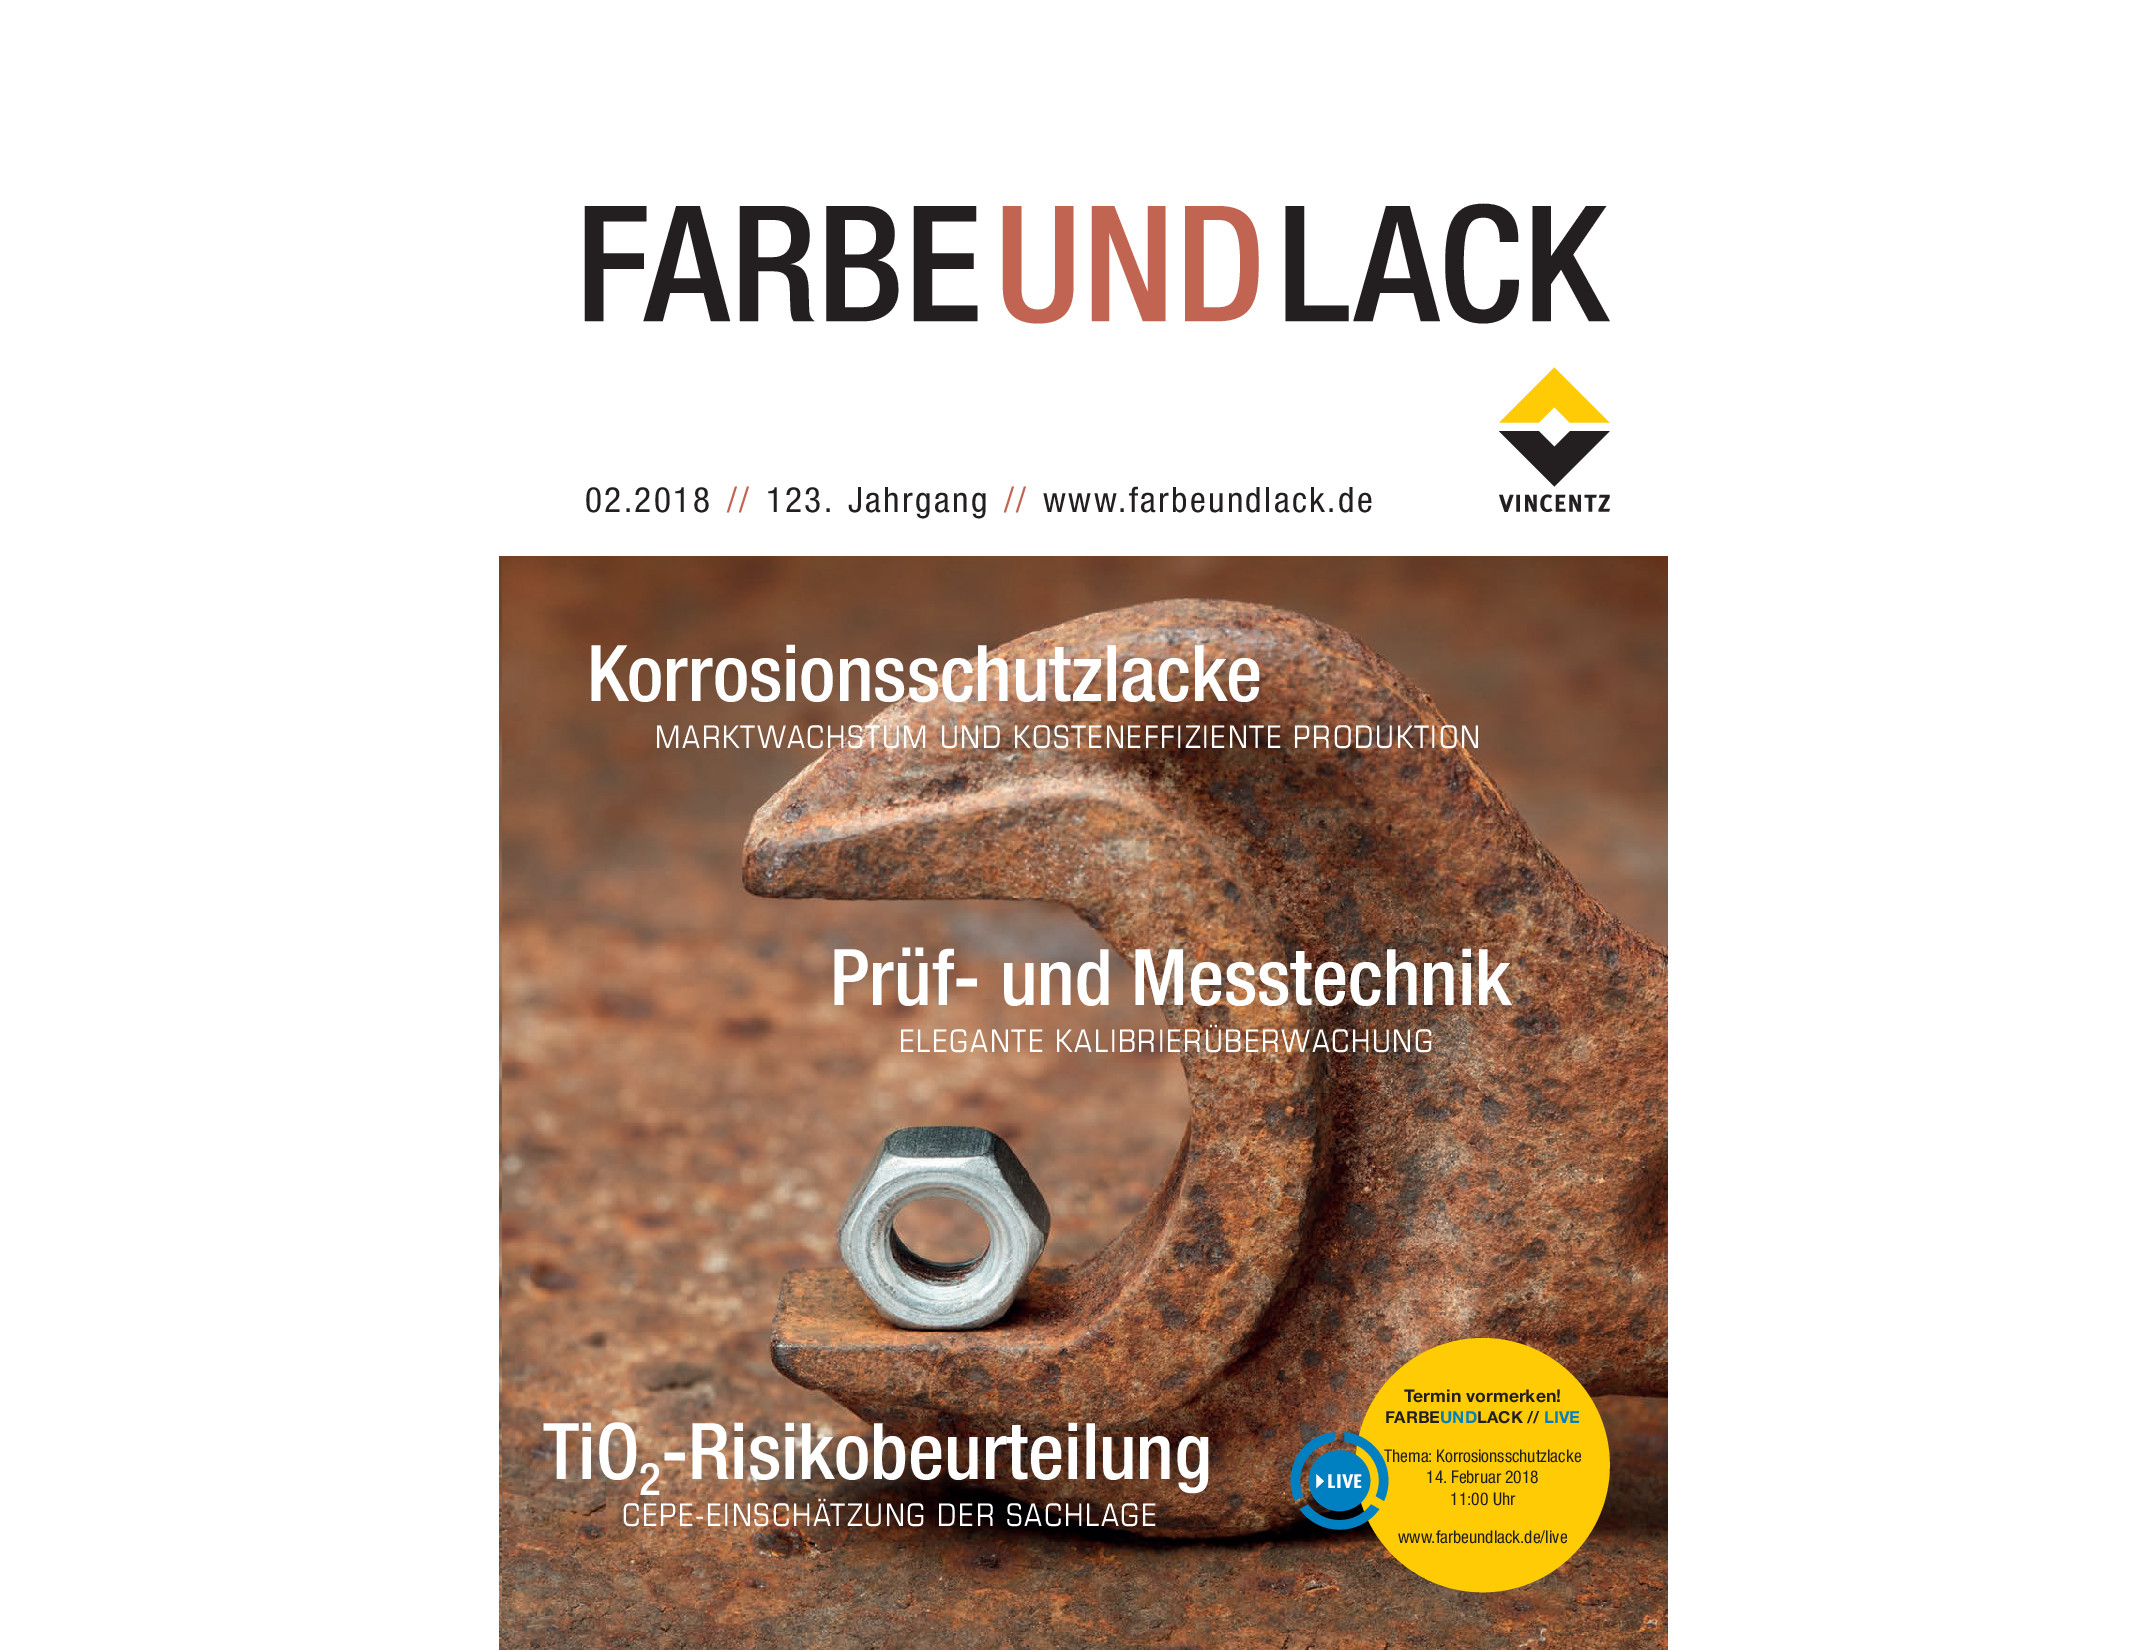 FARBE UND LACK article about PINPOOLS